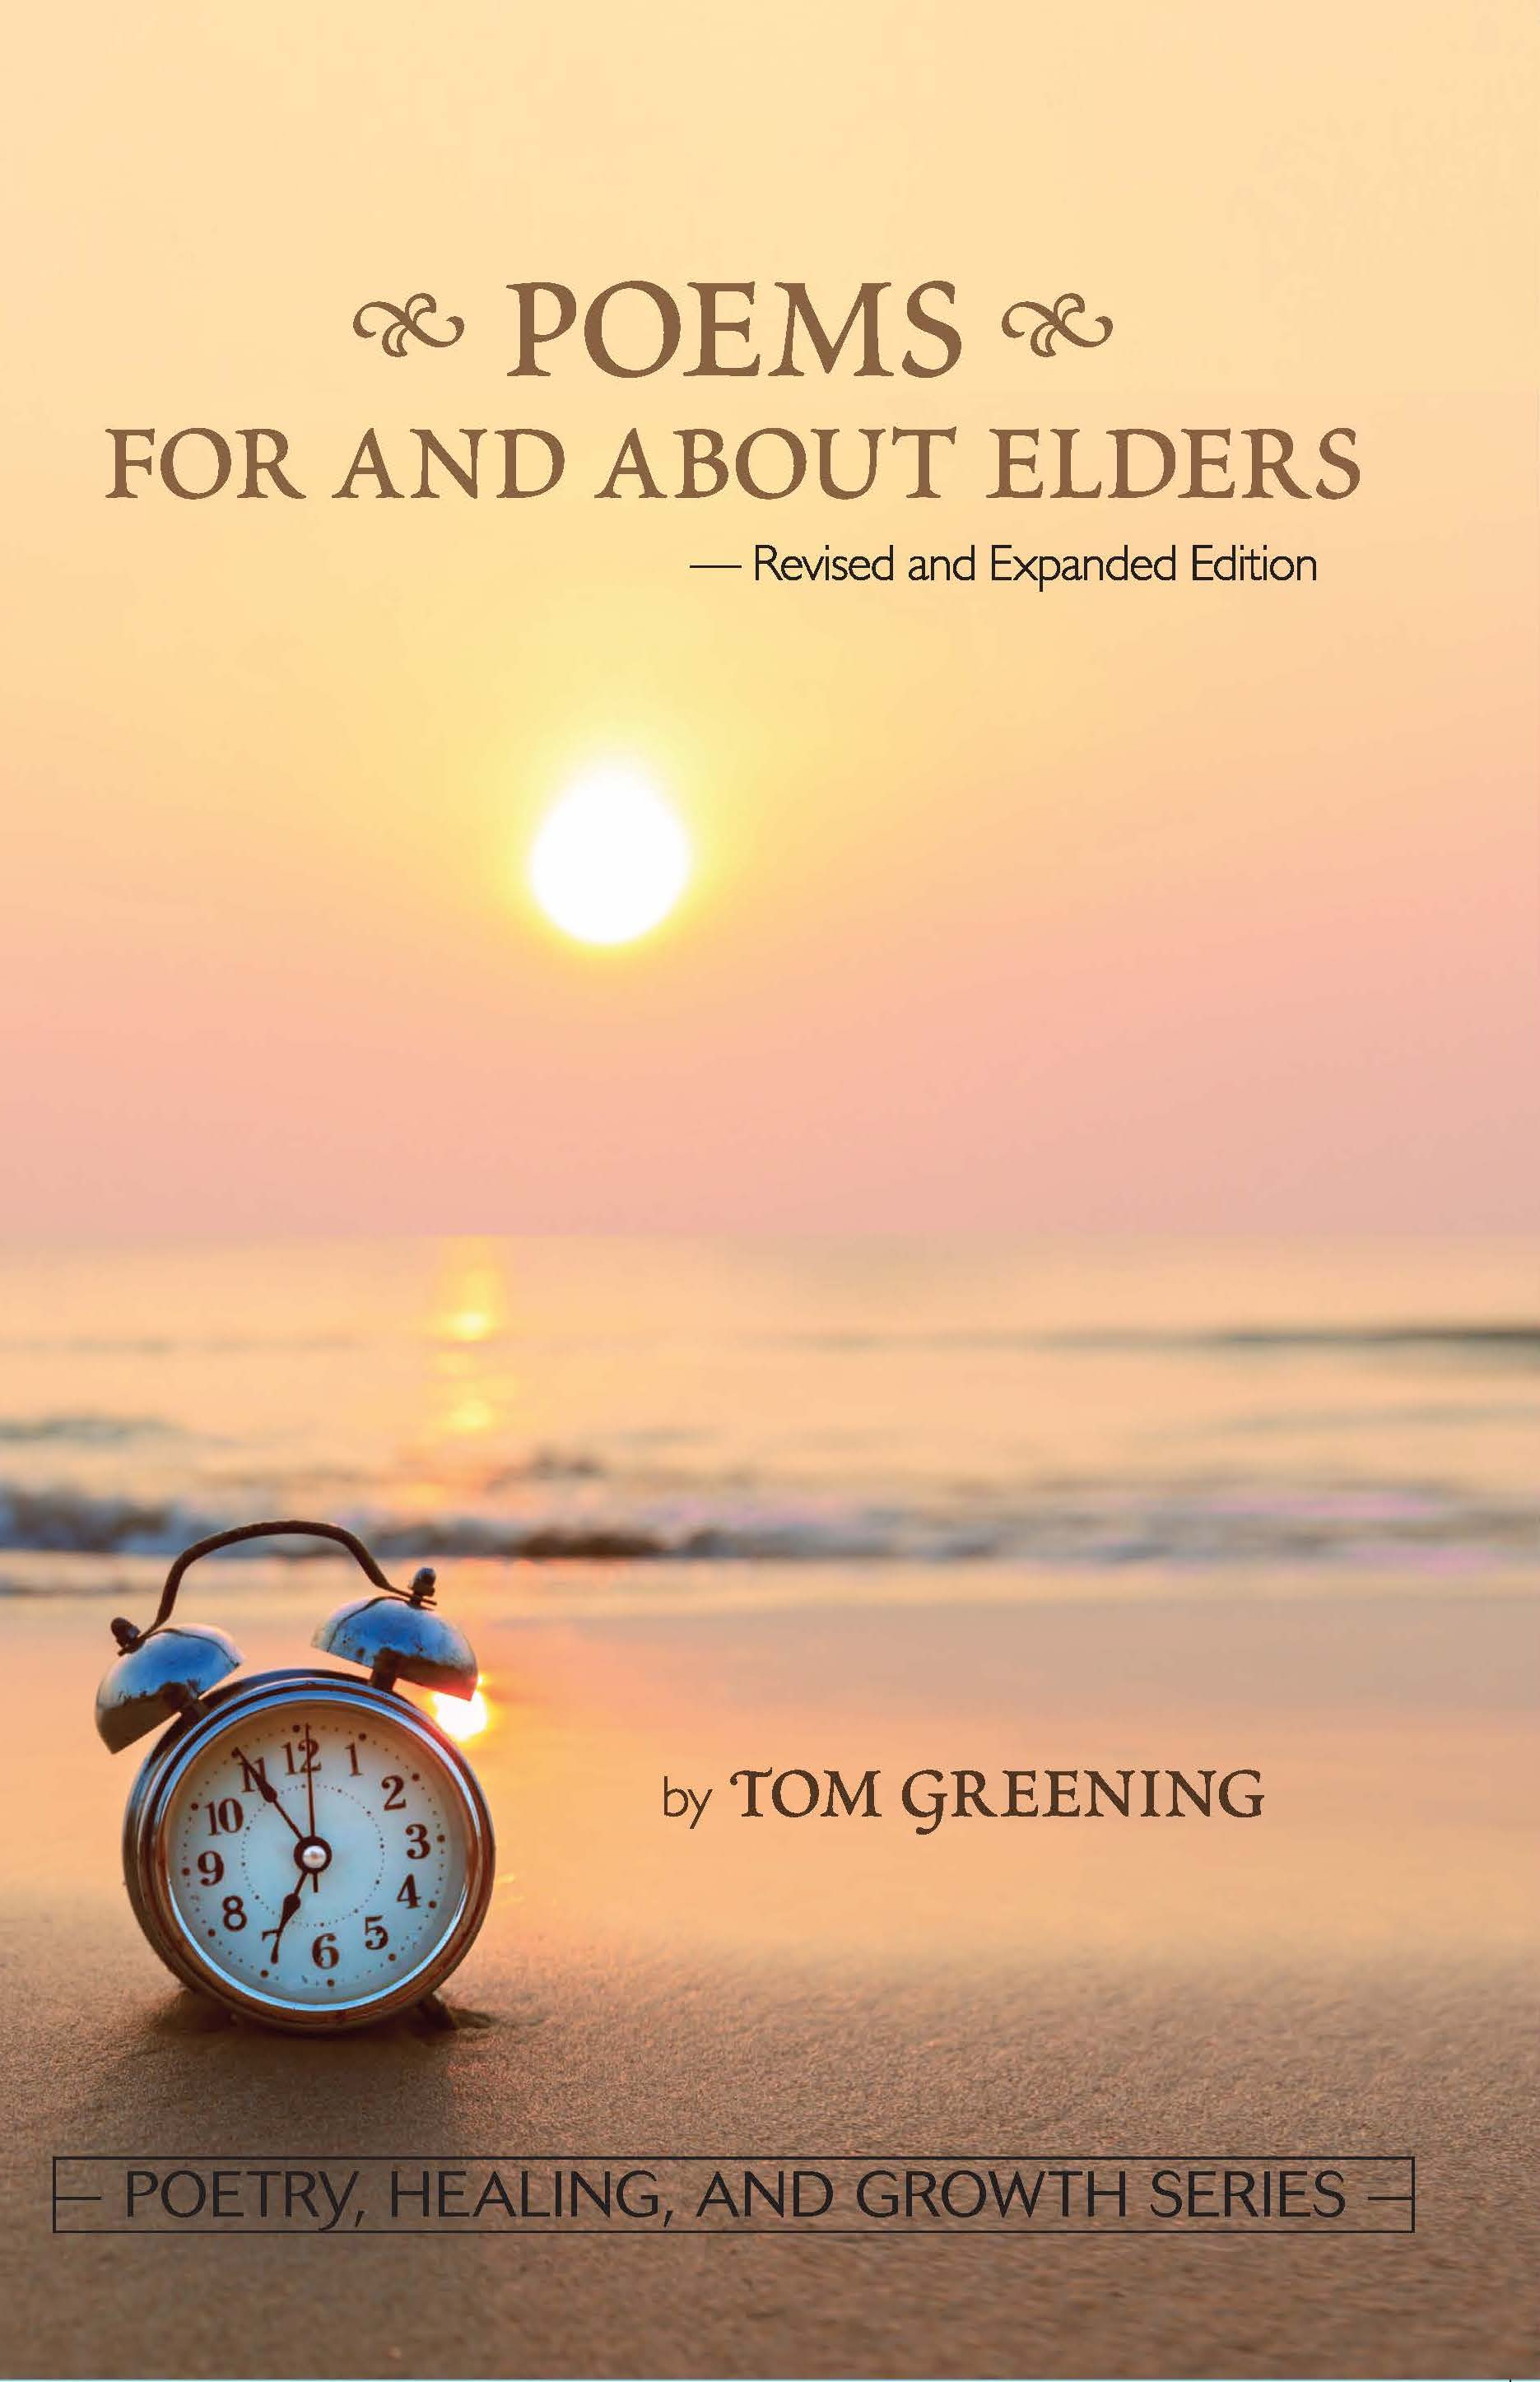 Poems For and About Elders (Revised and Expanded Edition)